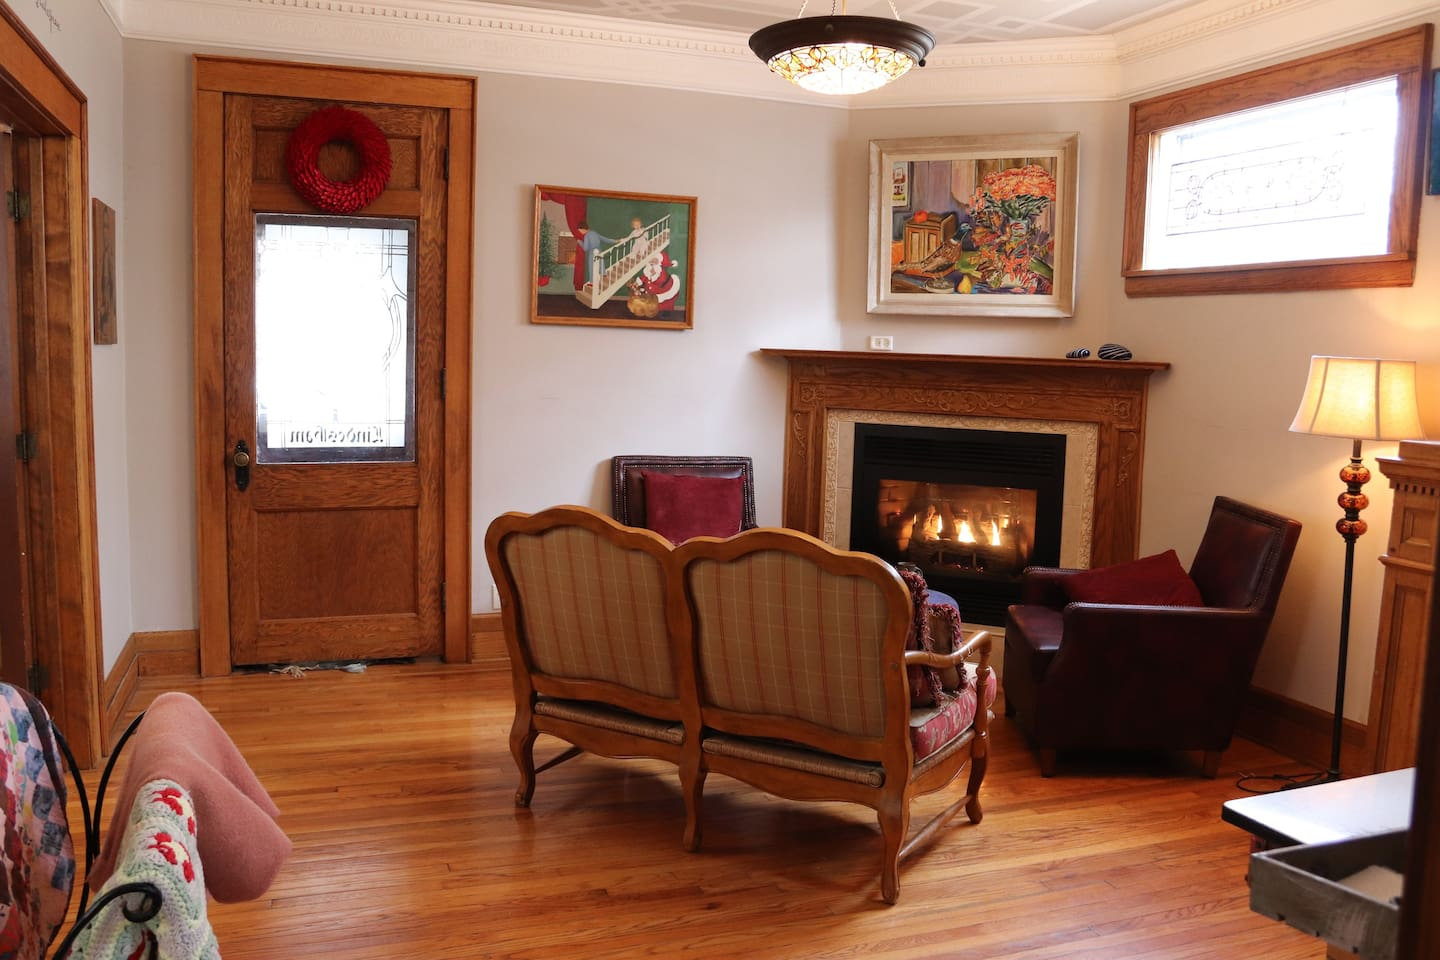 Upon walking in you will see a gas fireplace, stained-glass windows and a coffee bar.